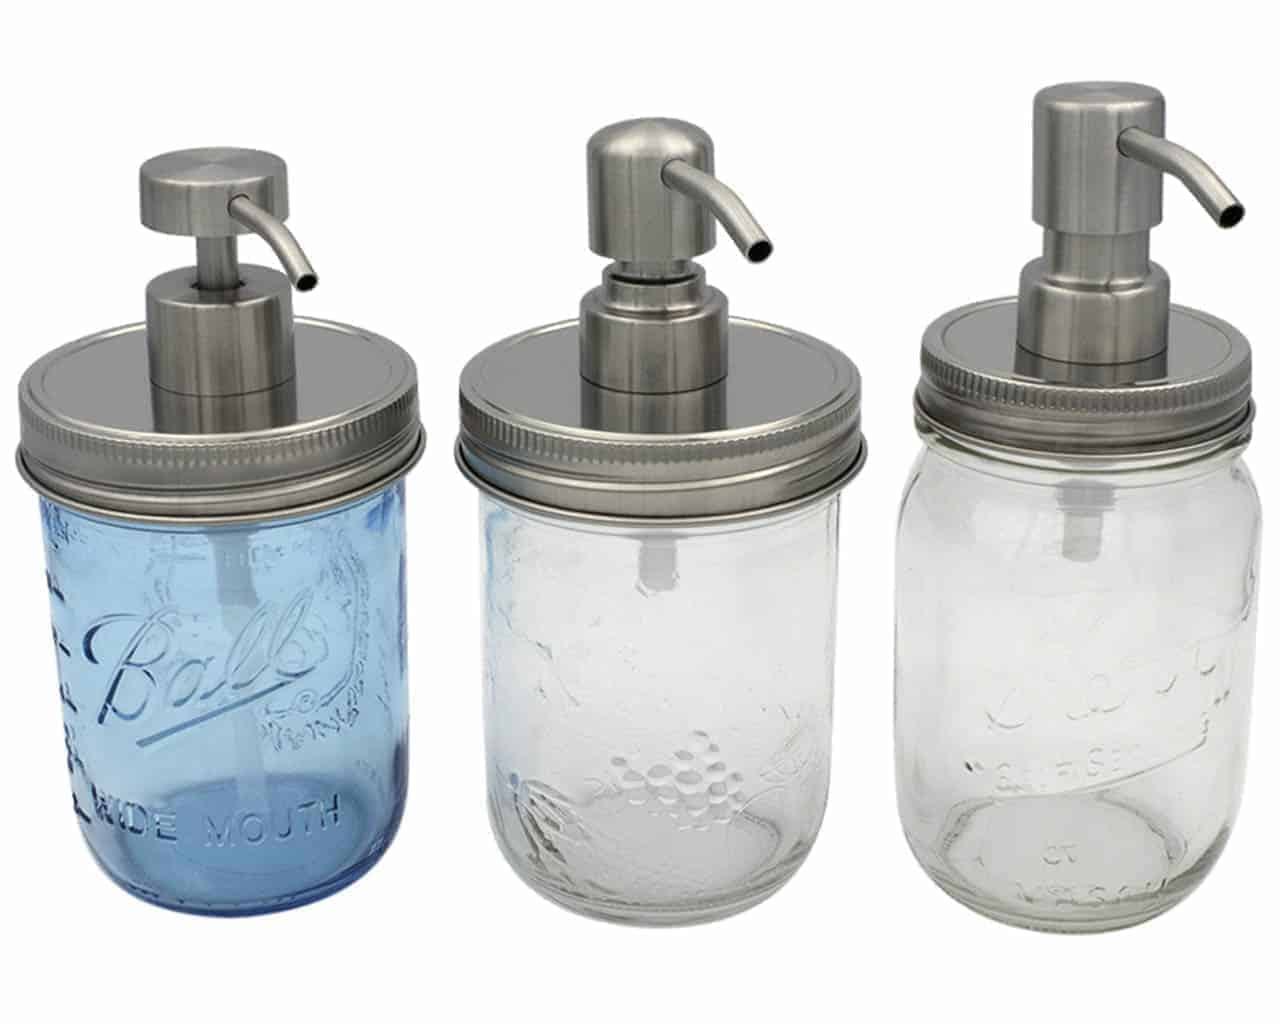 Soap Pump Dispensers For Mason Jars